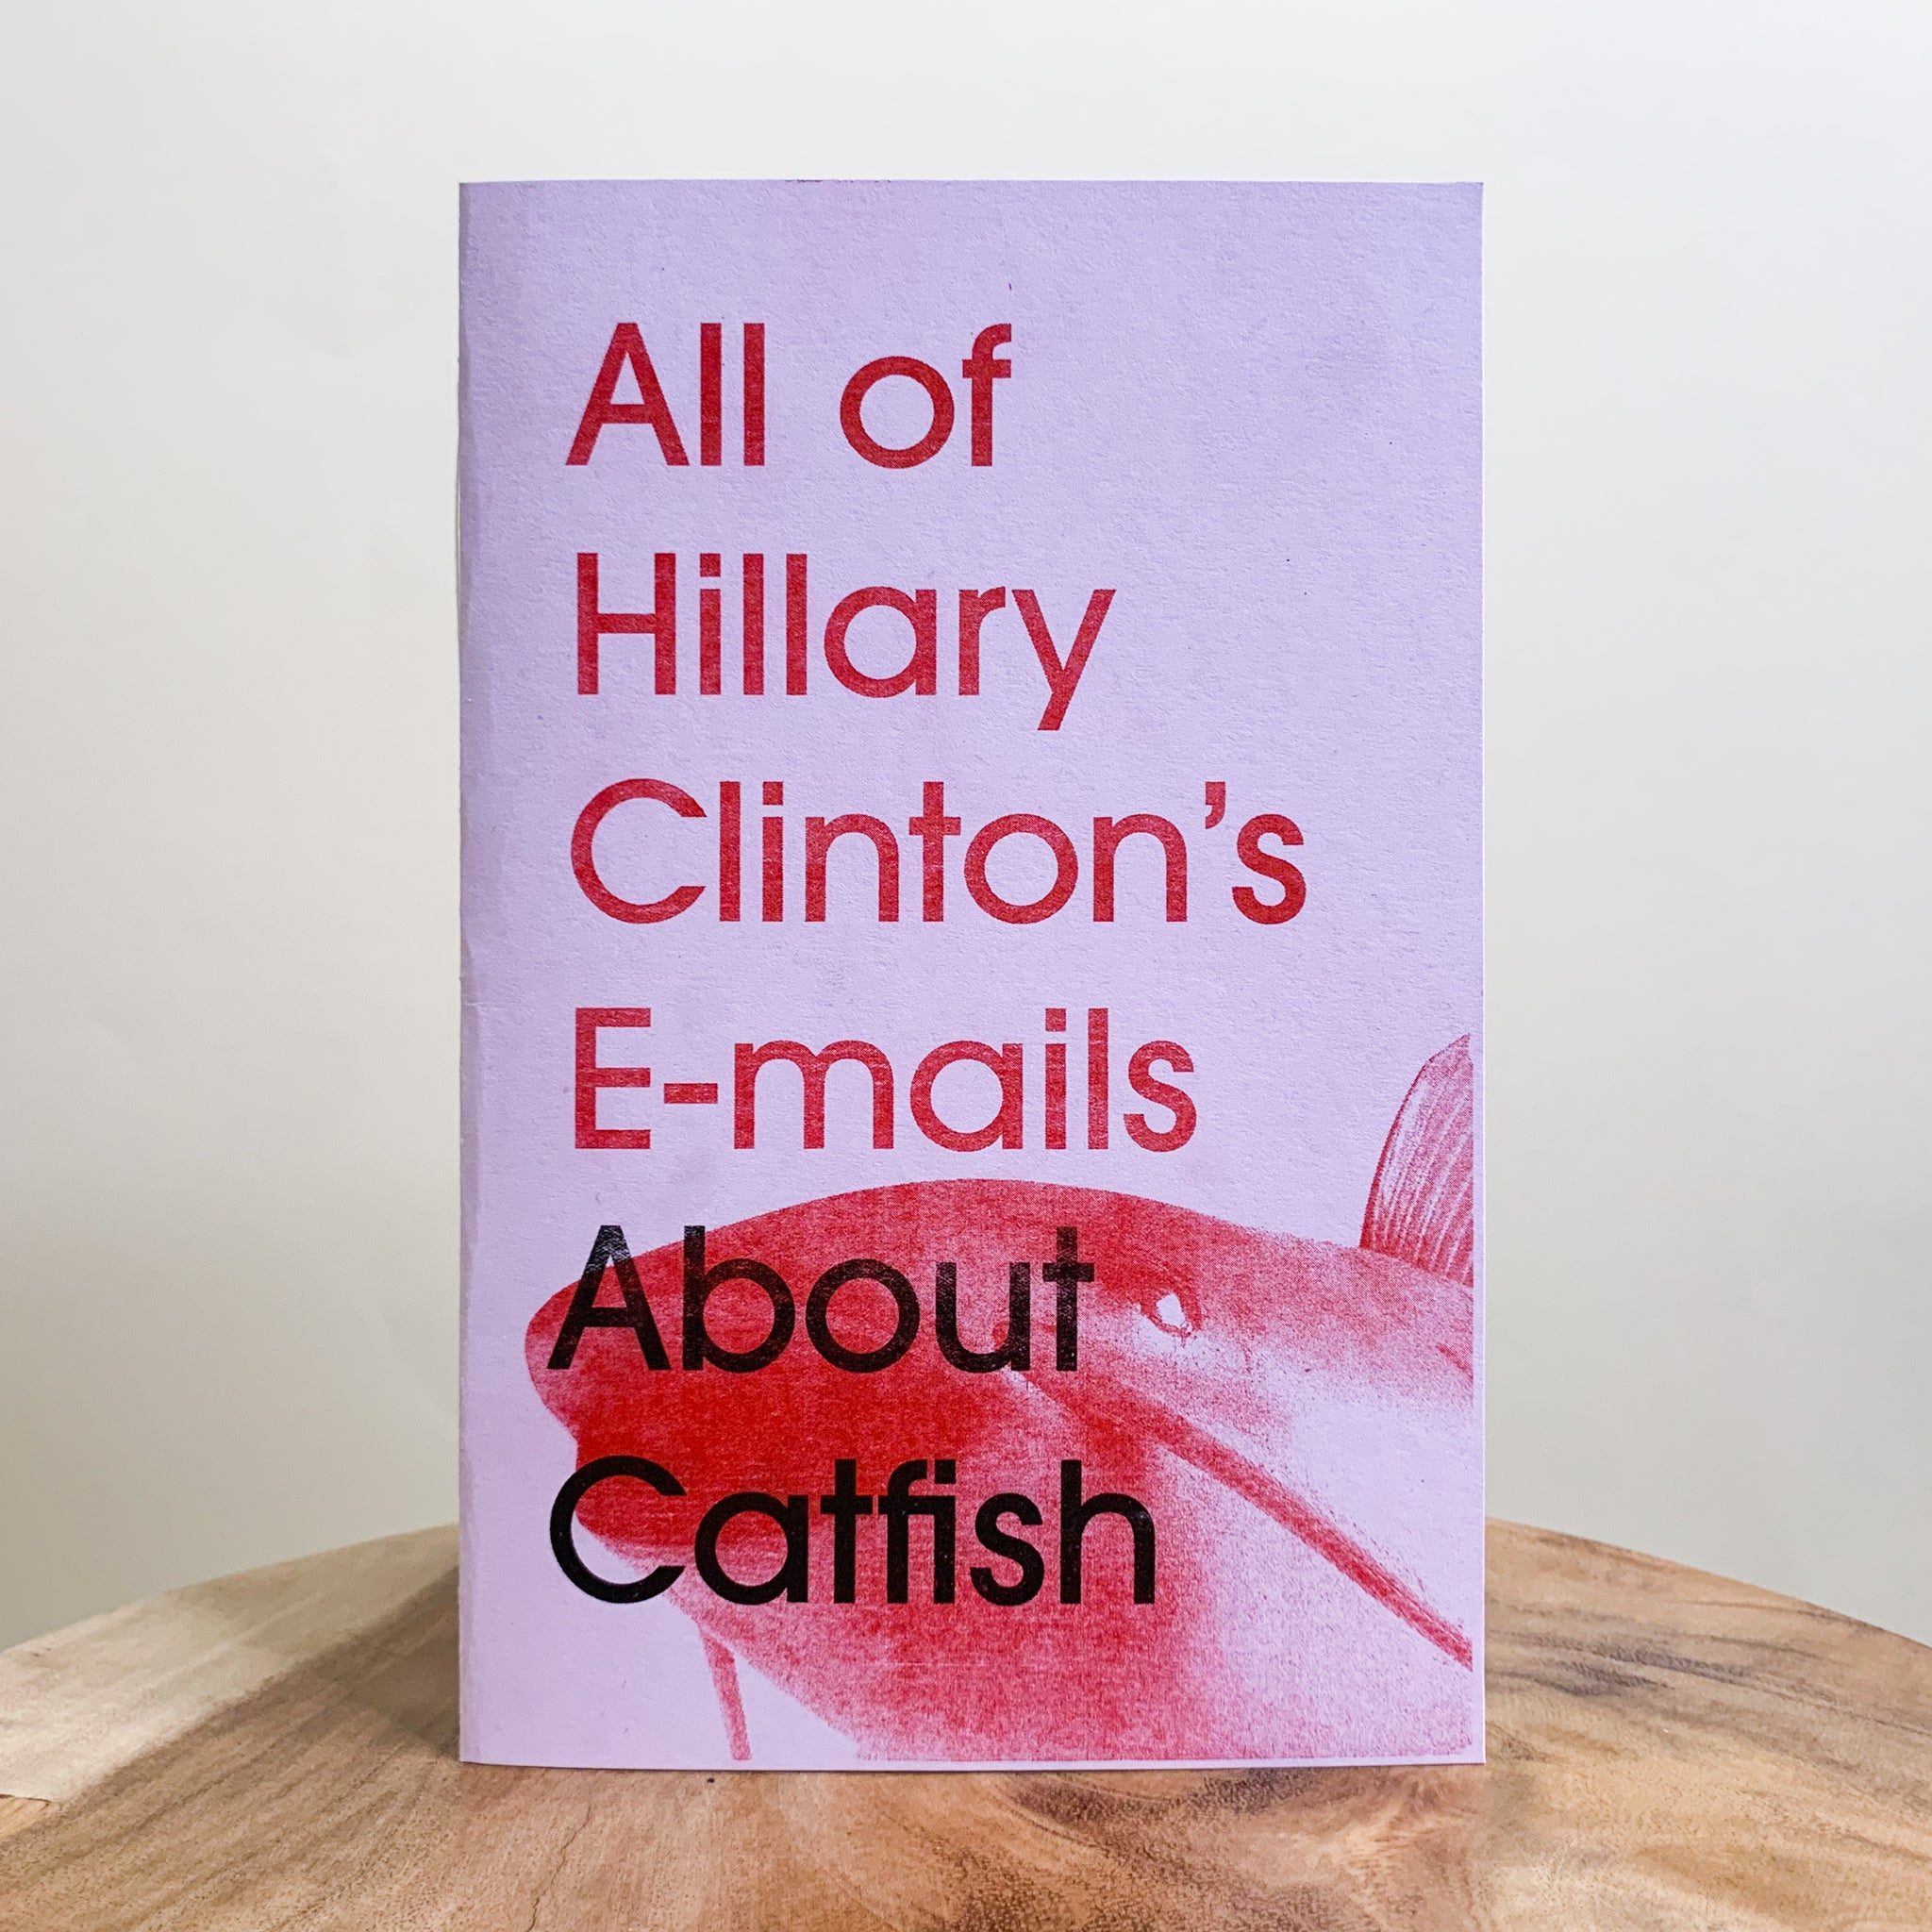 All of Hillary Clinton's Emails About Catfish